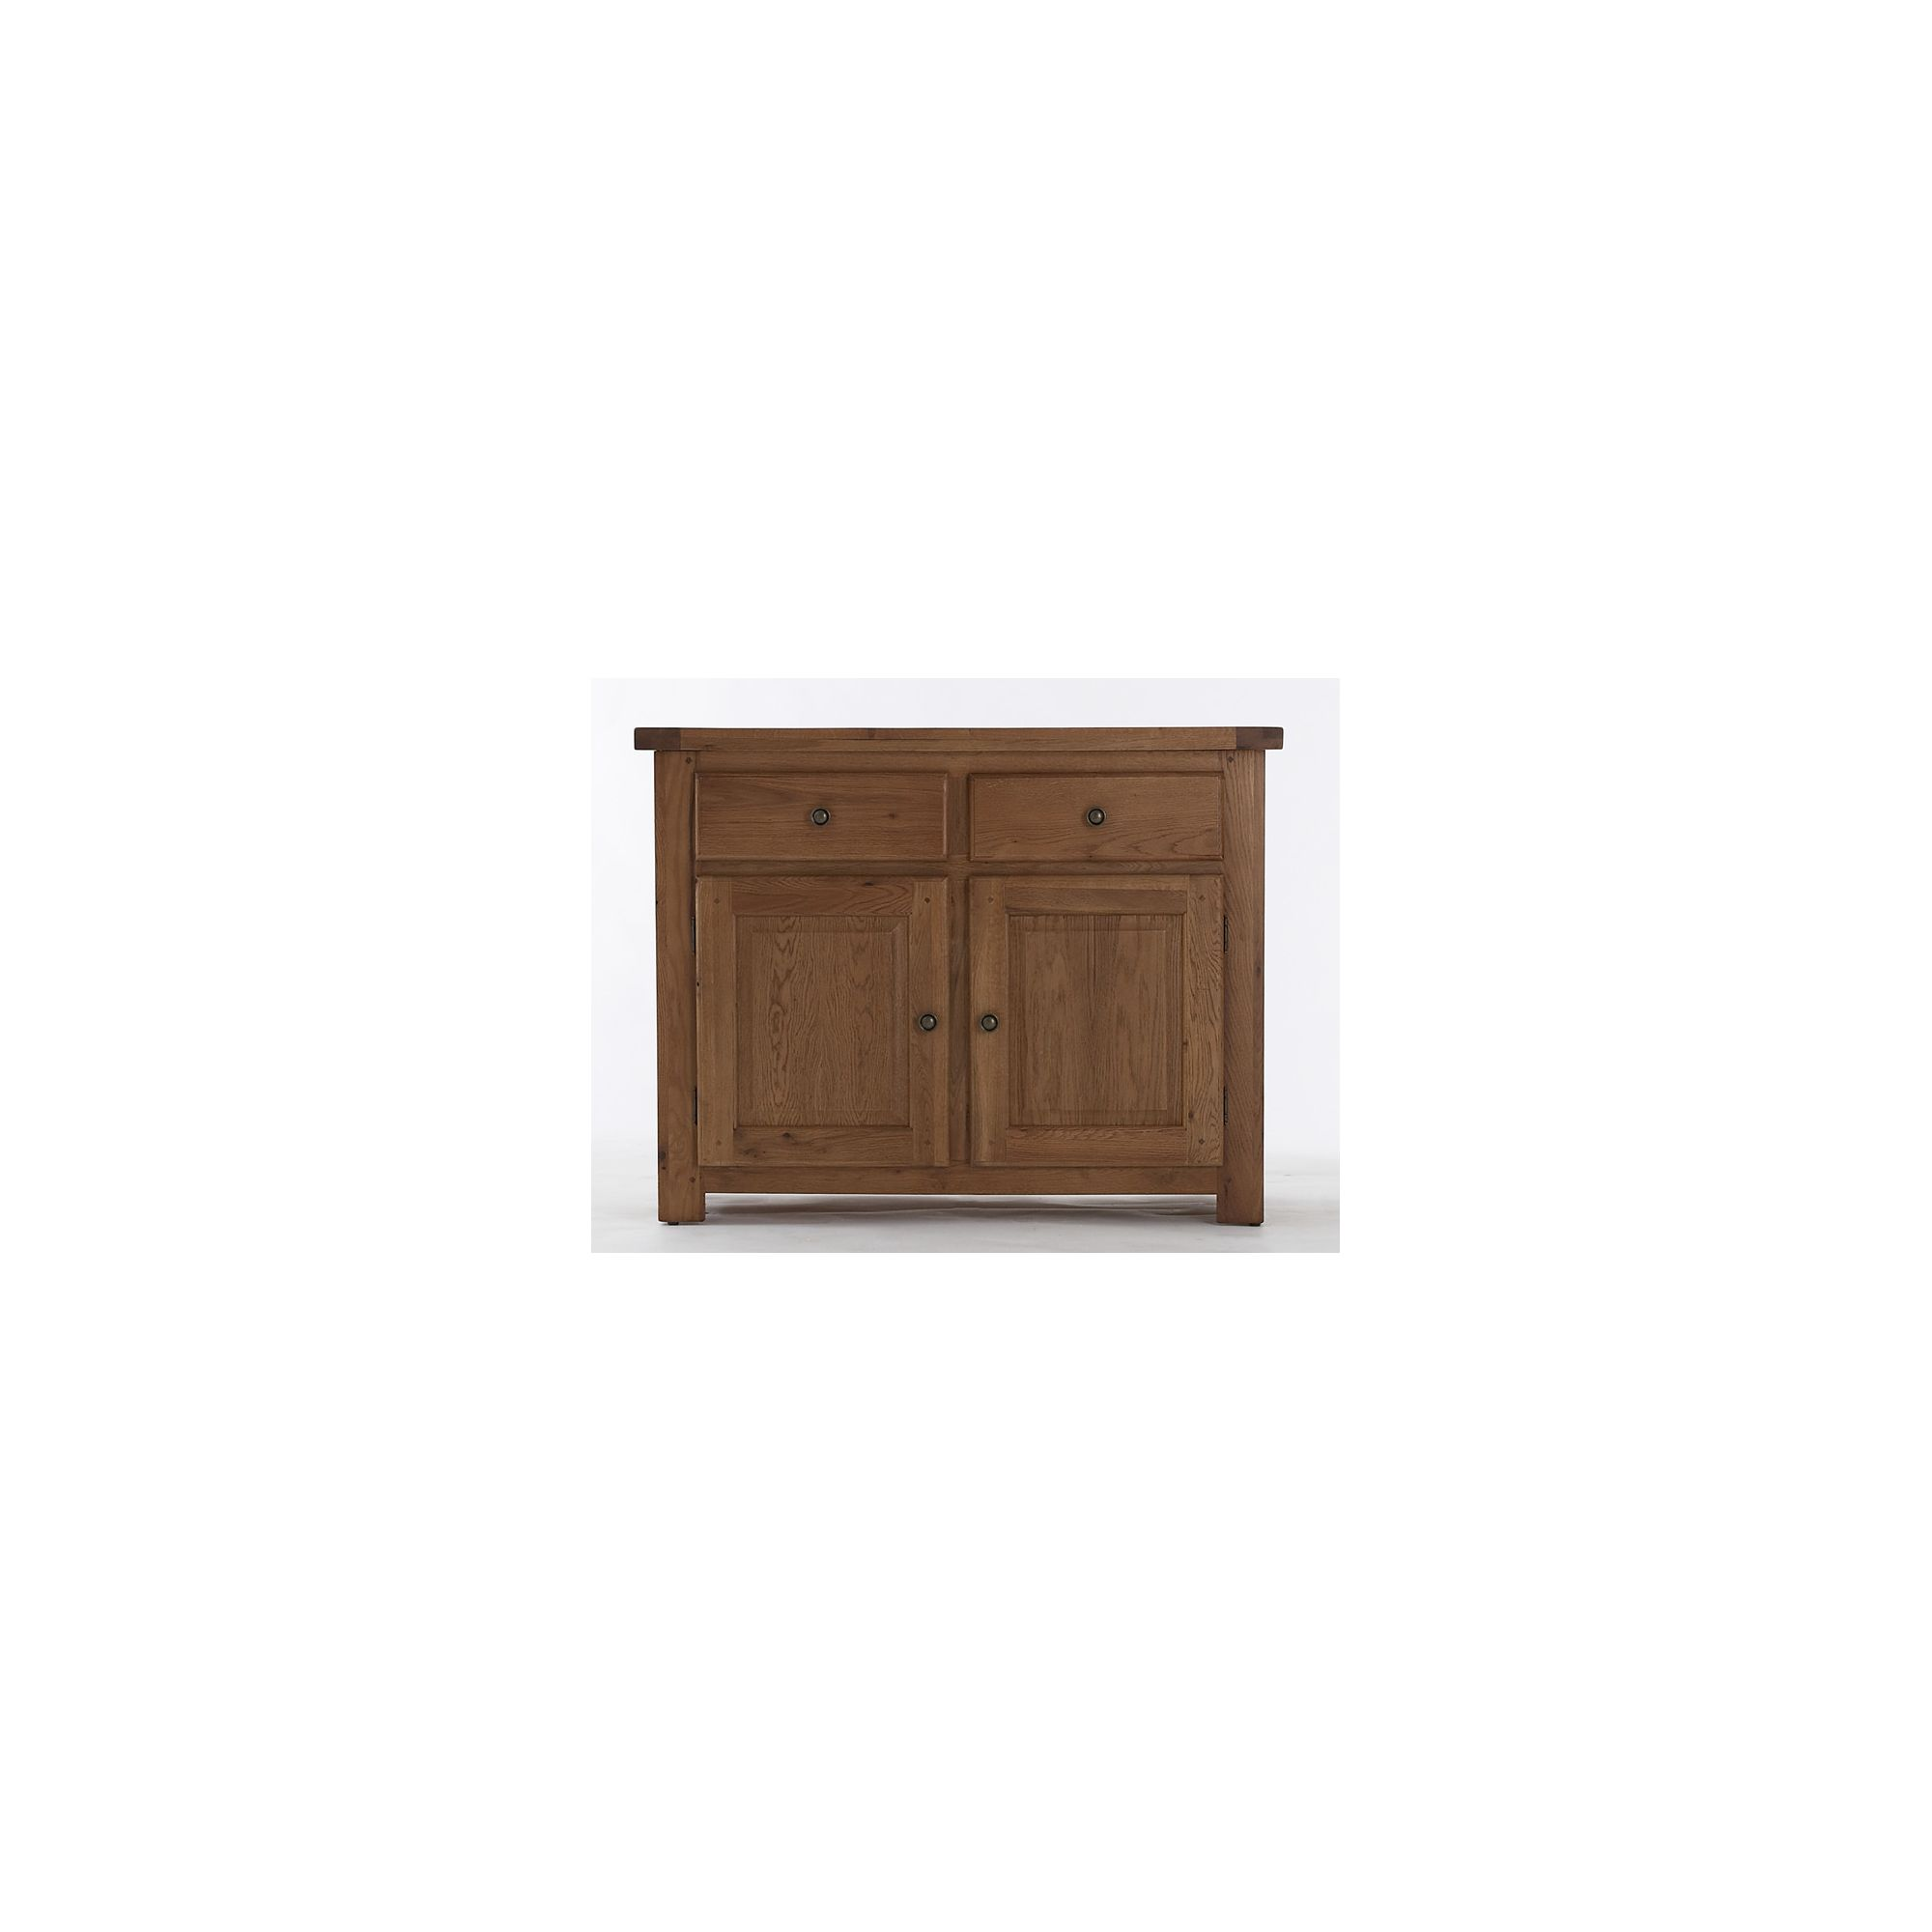 Thorndon Farmhouse 2 Door Sideboard in Old Oak at Tesco Direct